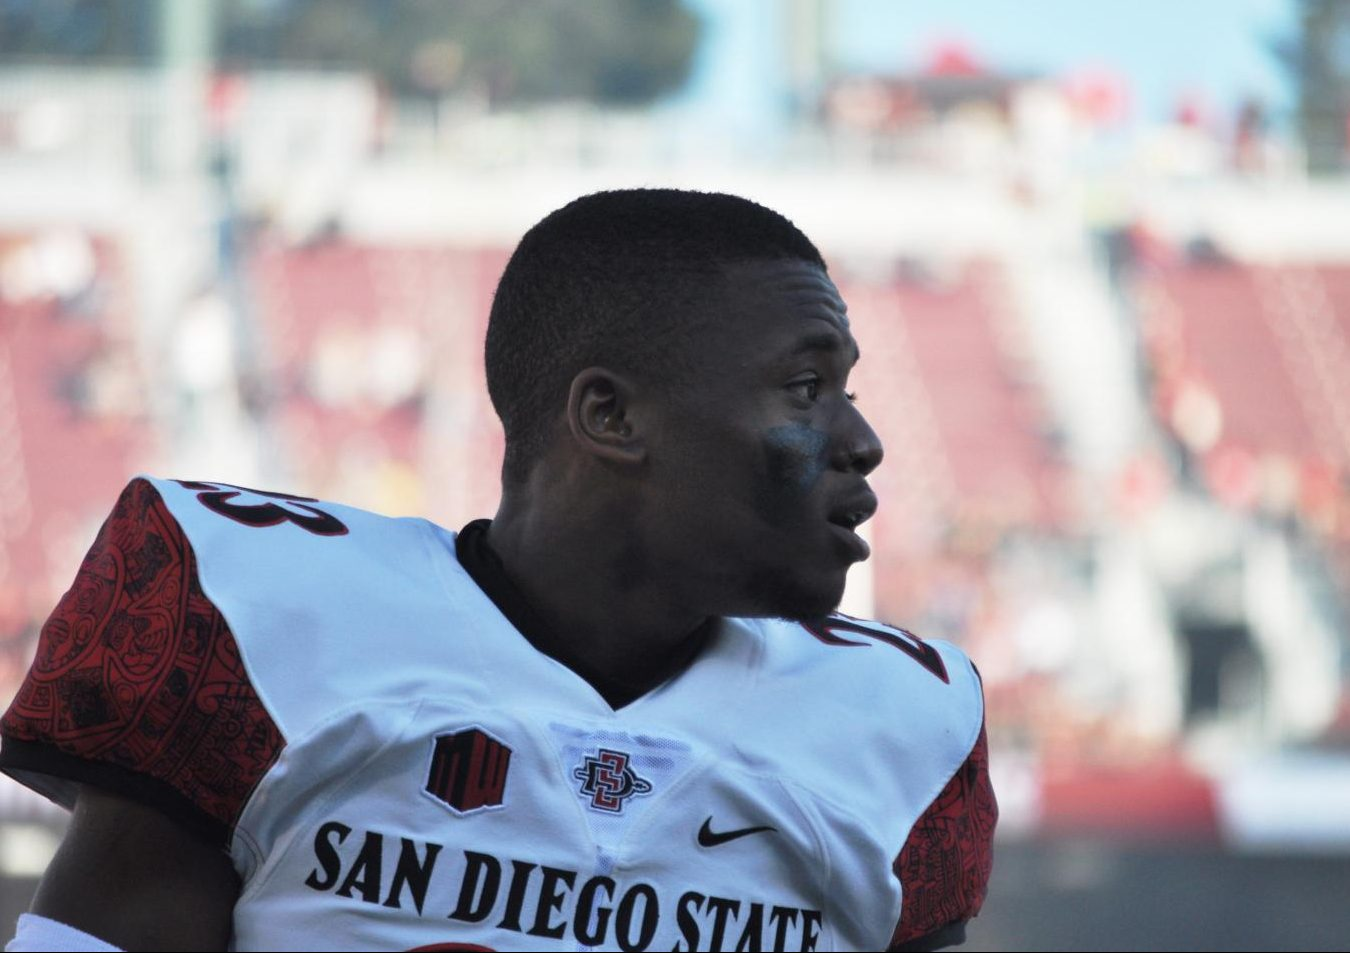 Redshirt freshman Darren Hall looks across the field during warmups before a road game on Aug. 31 at Stanford University.